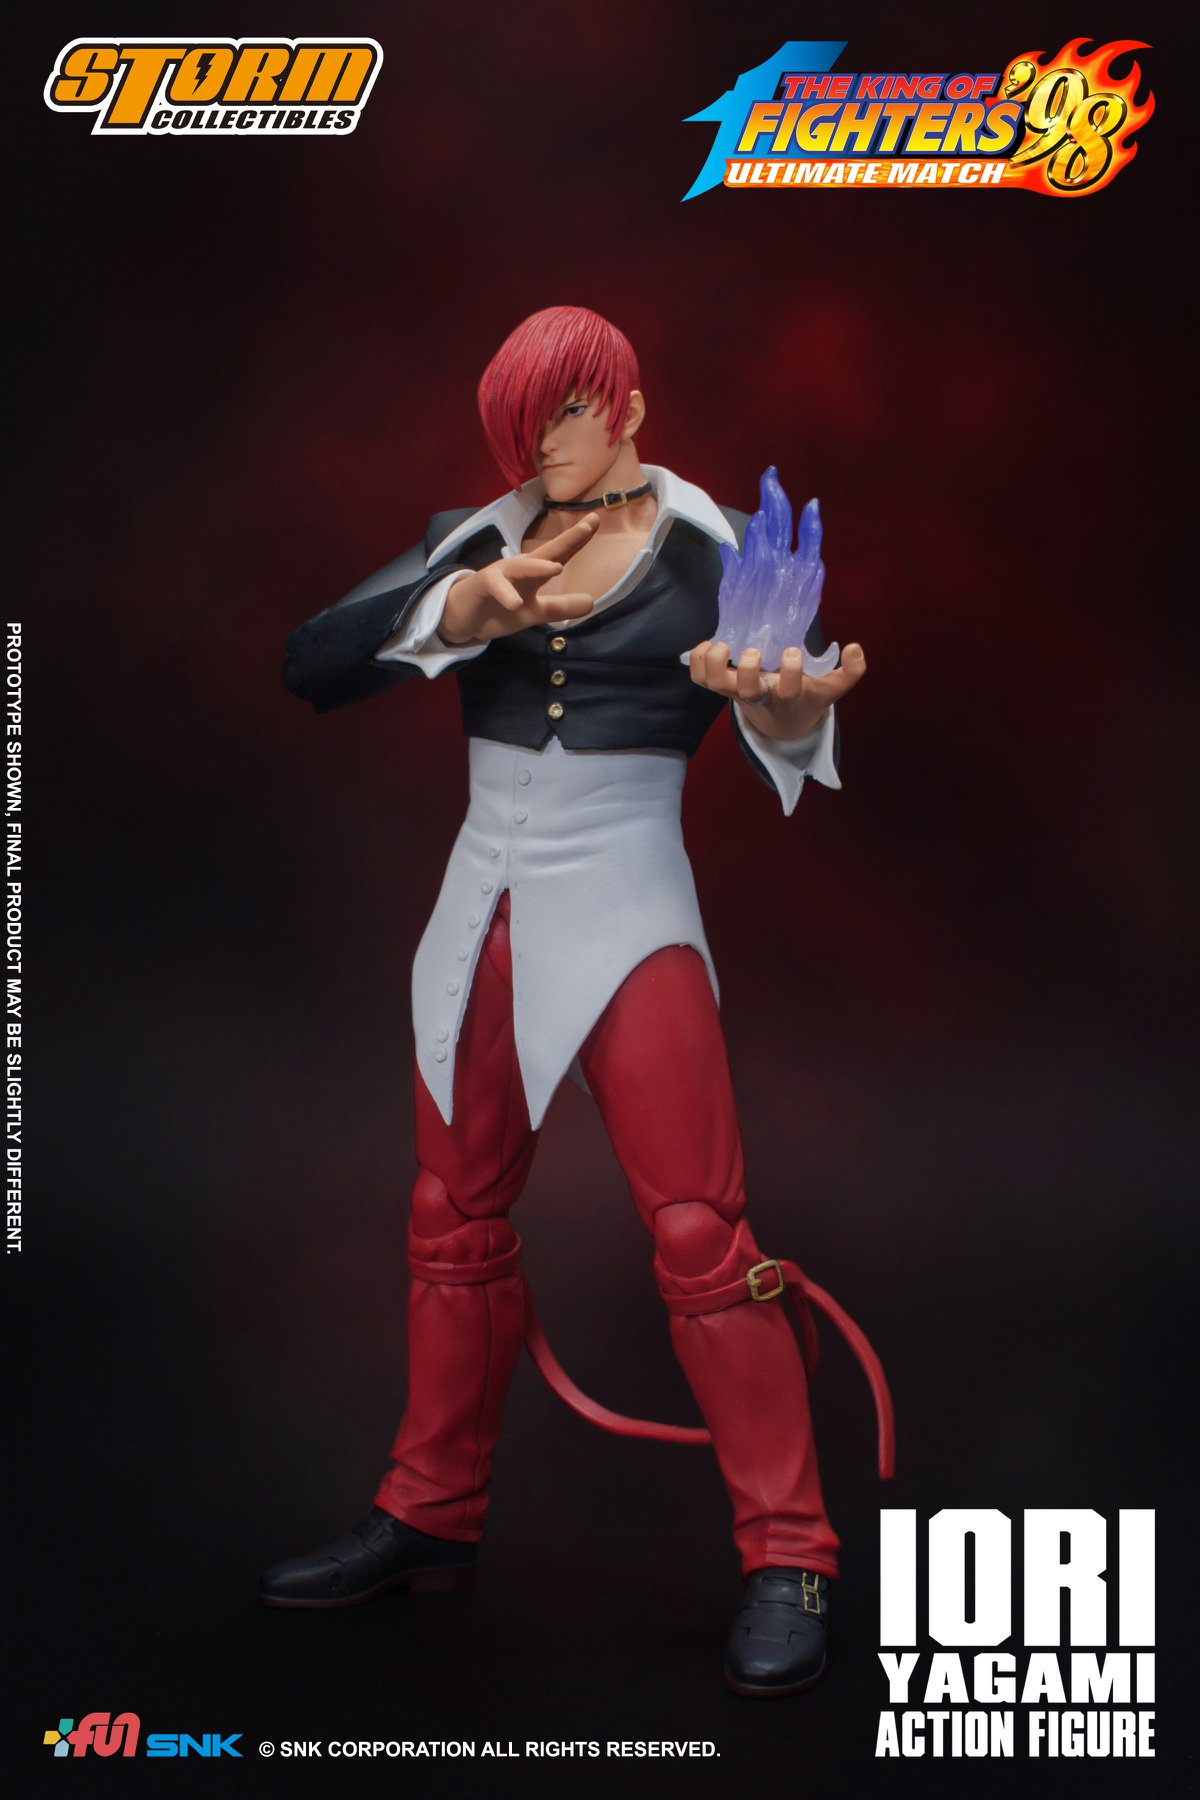 [Pre-Order] King of Fighters' 98 - Iori Yagami 1/12 Action Figure